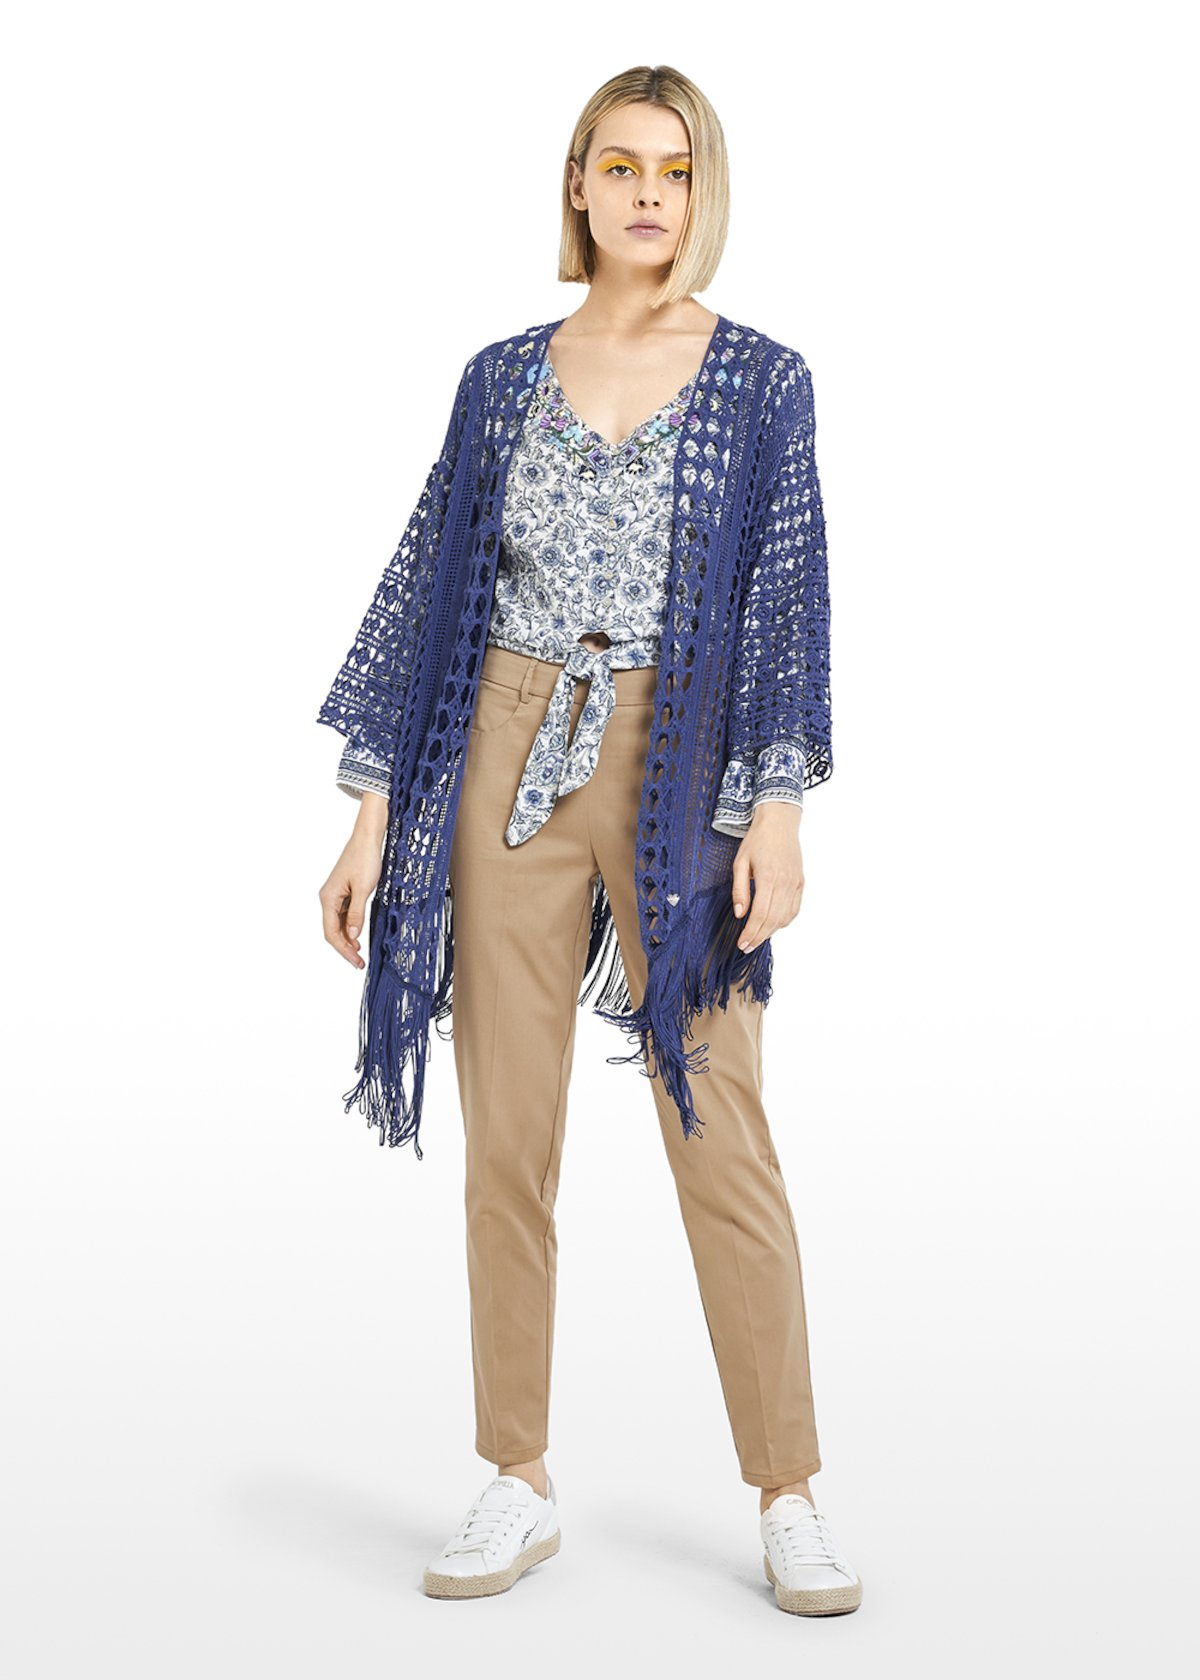 Cloedy long Cardigan with fringes at the bottom - Blue - Woman - Category image